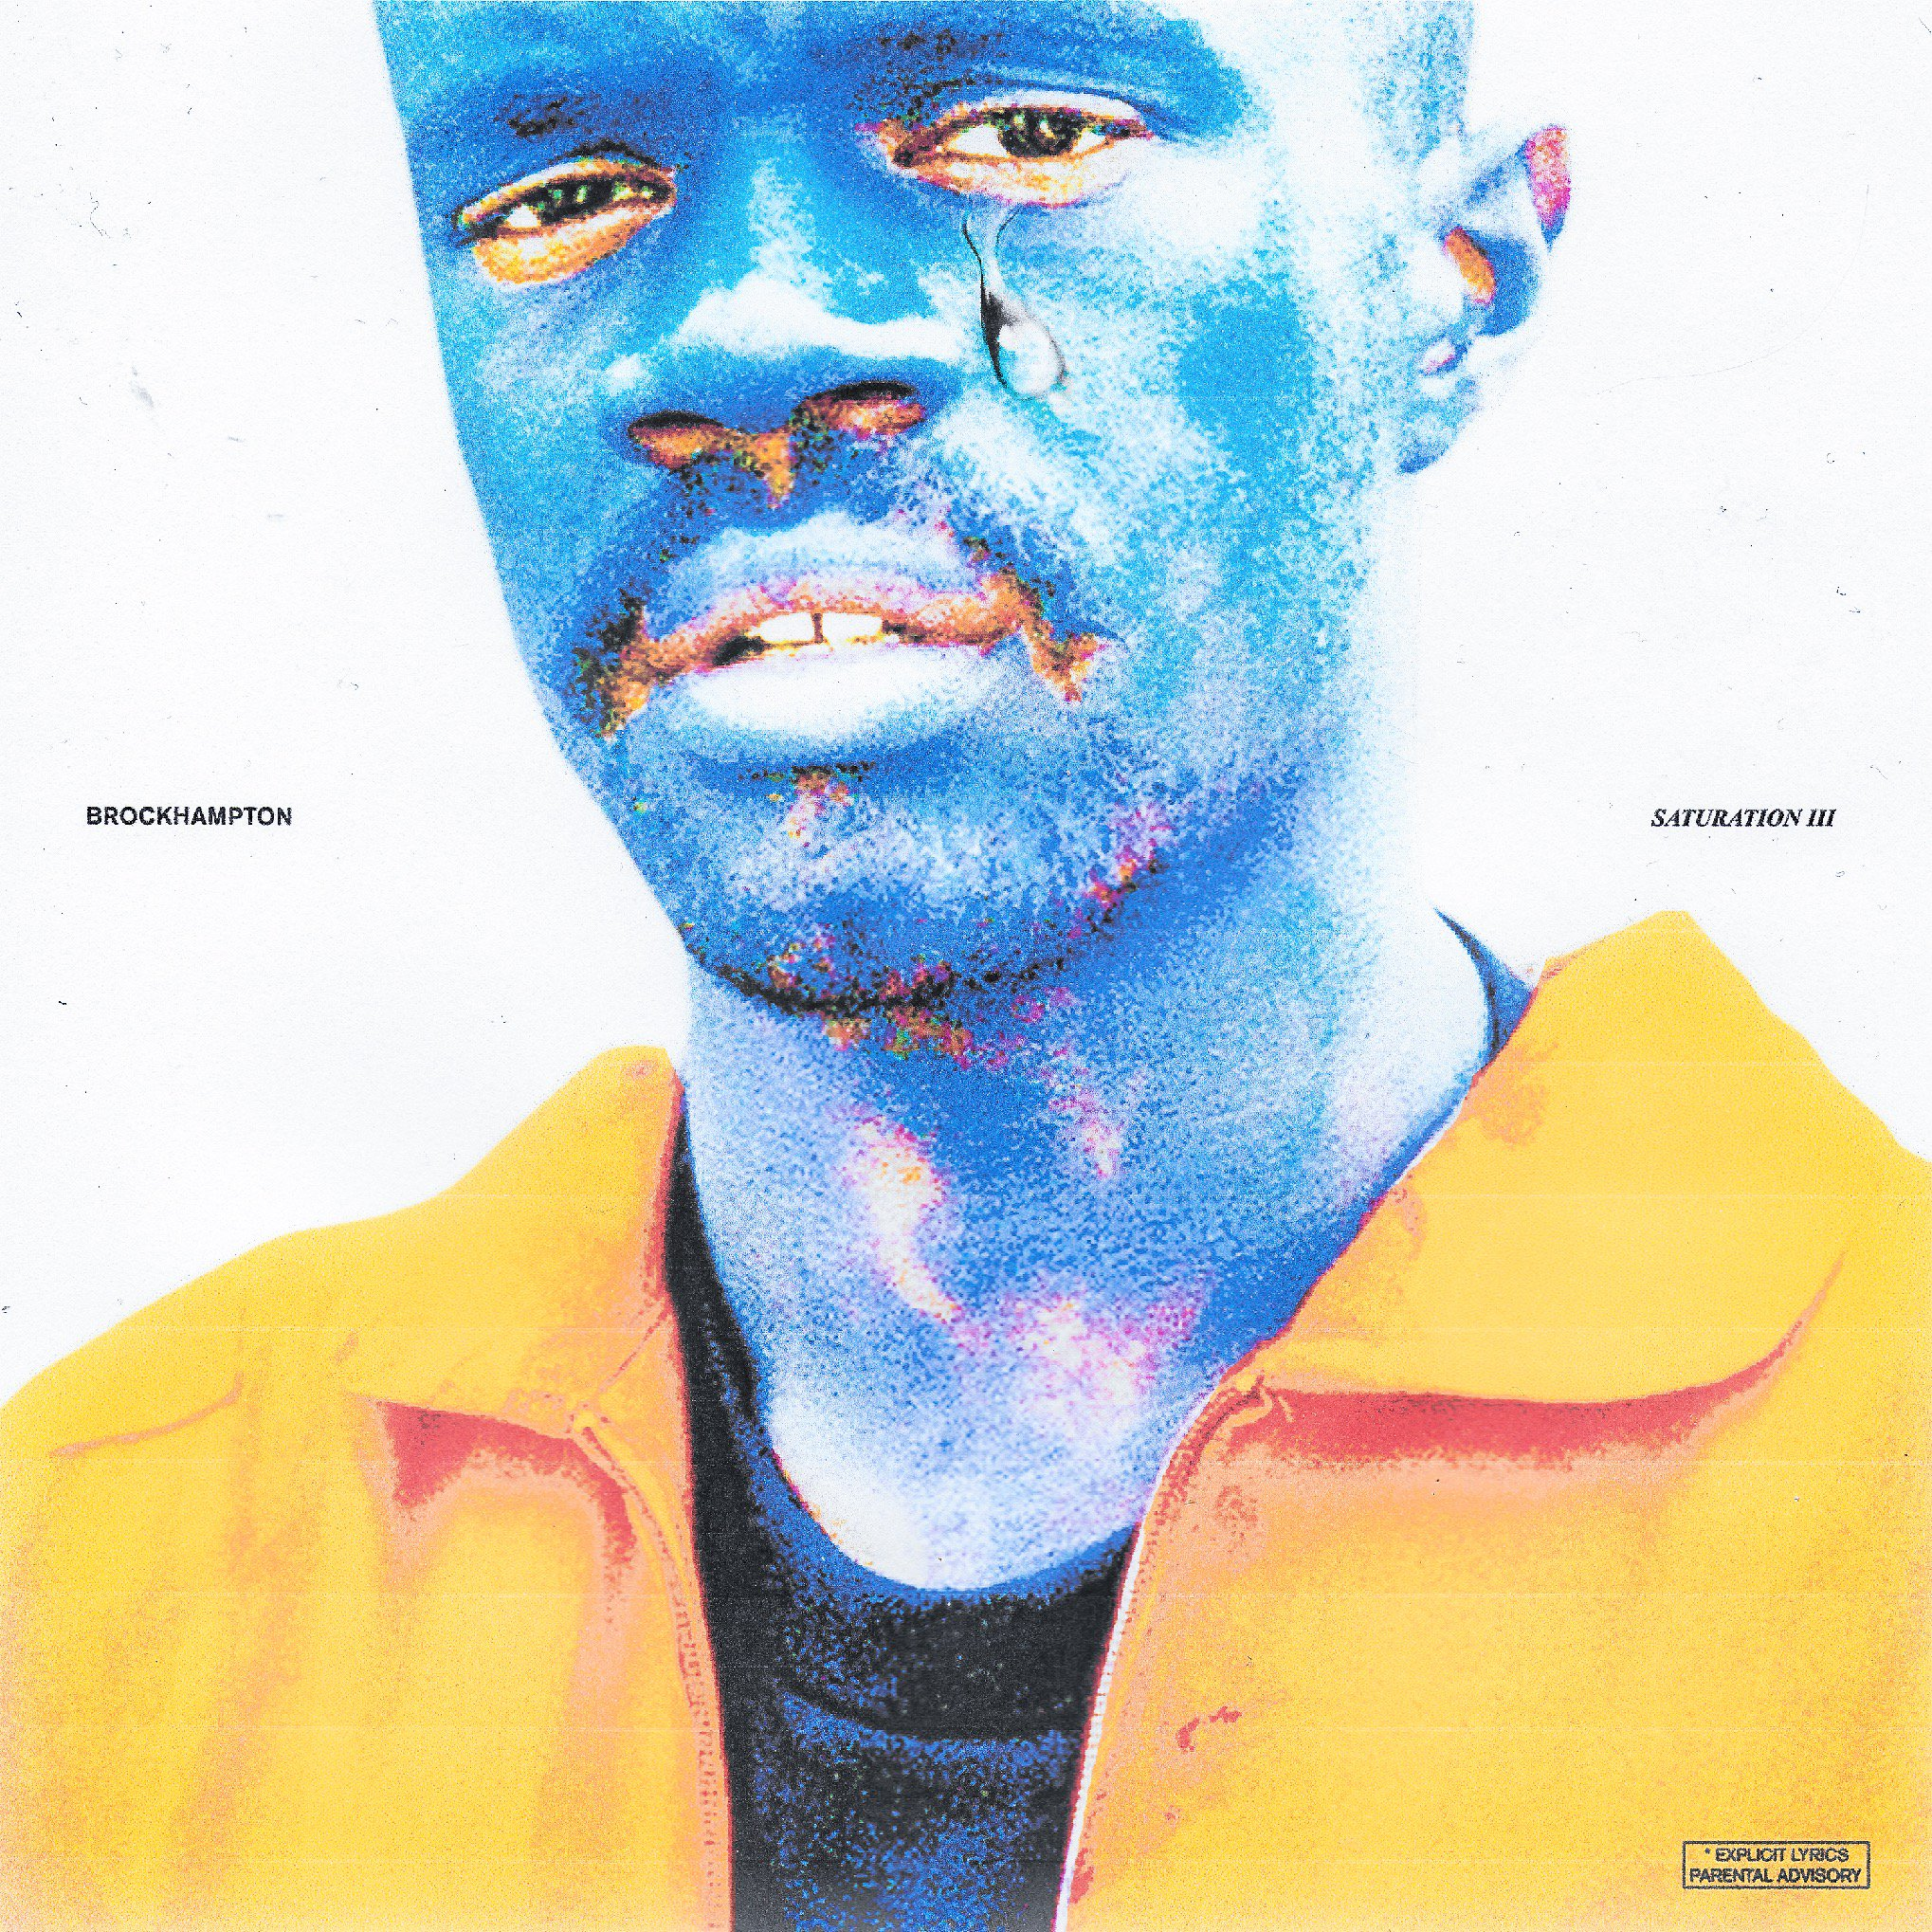 SATURATION III OUT NOW  https://t.co/6IWb80VKuU https://t.co/SATd7YrhMD